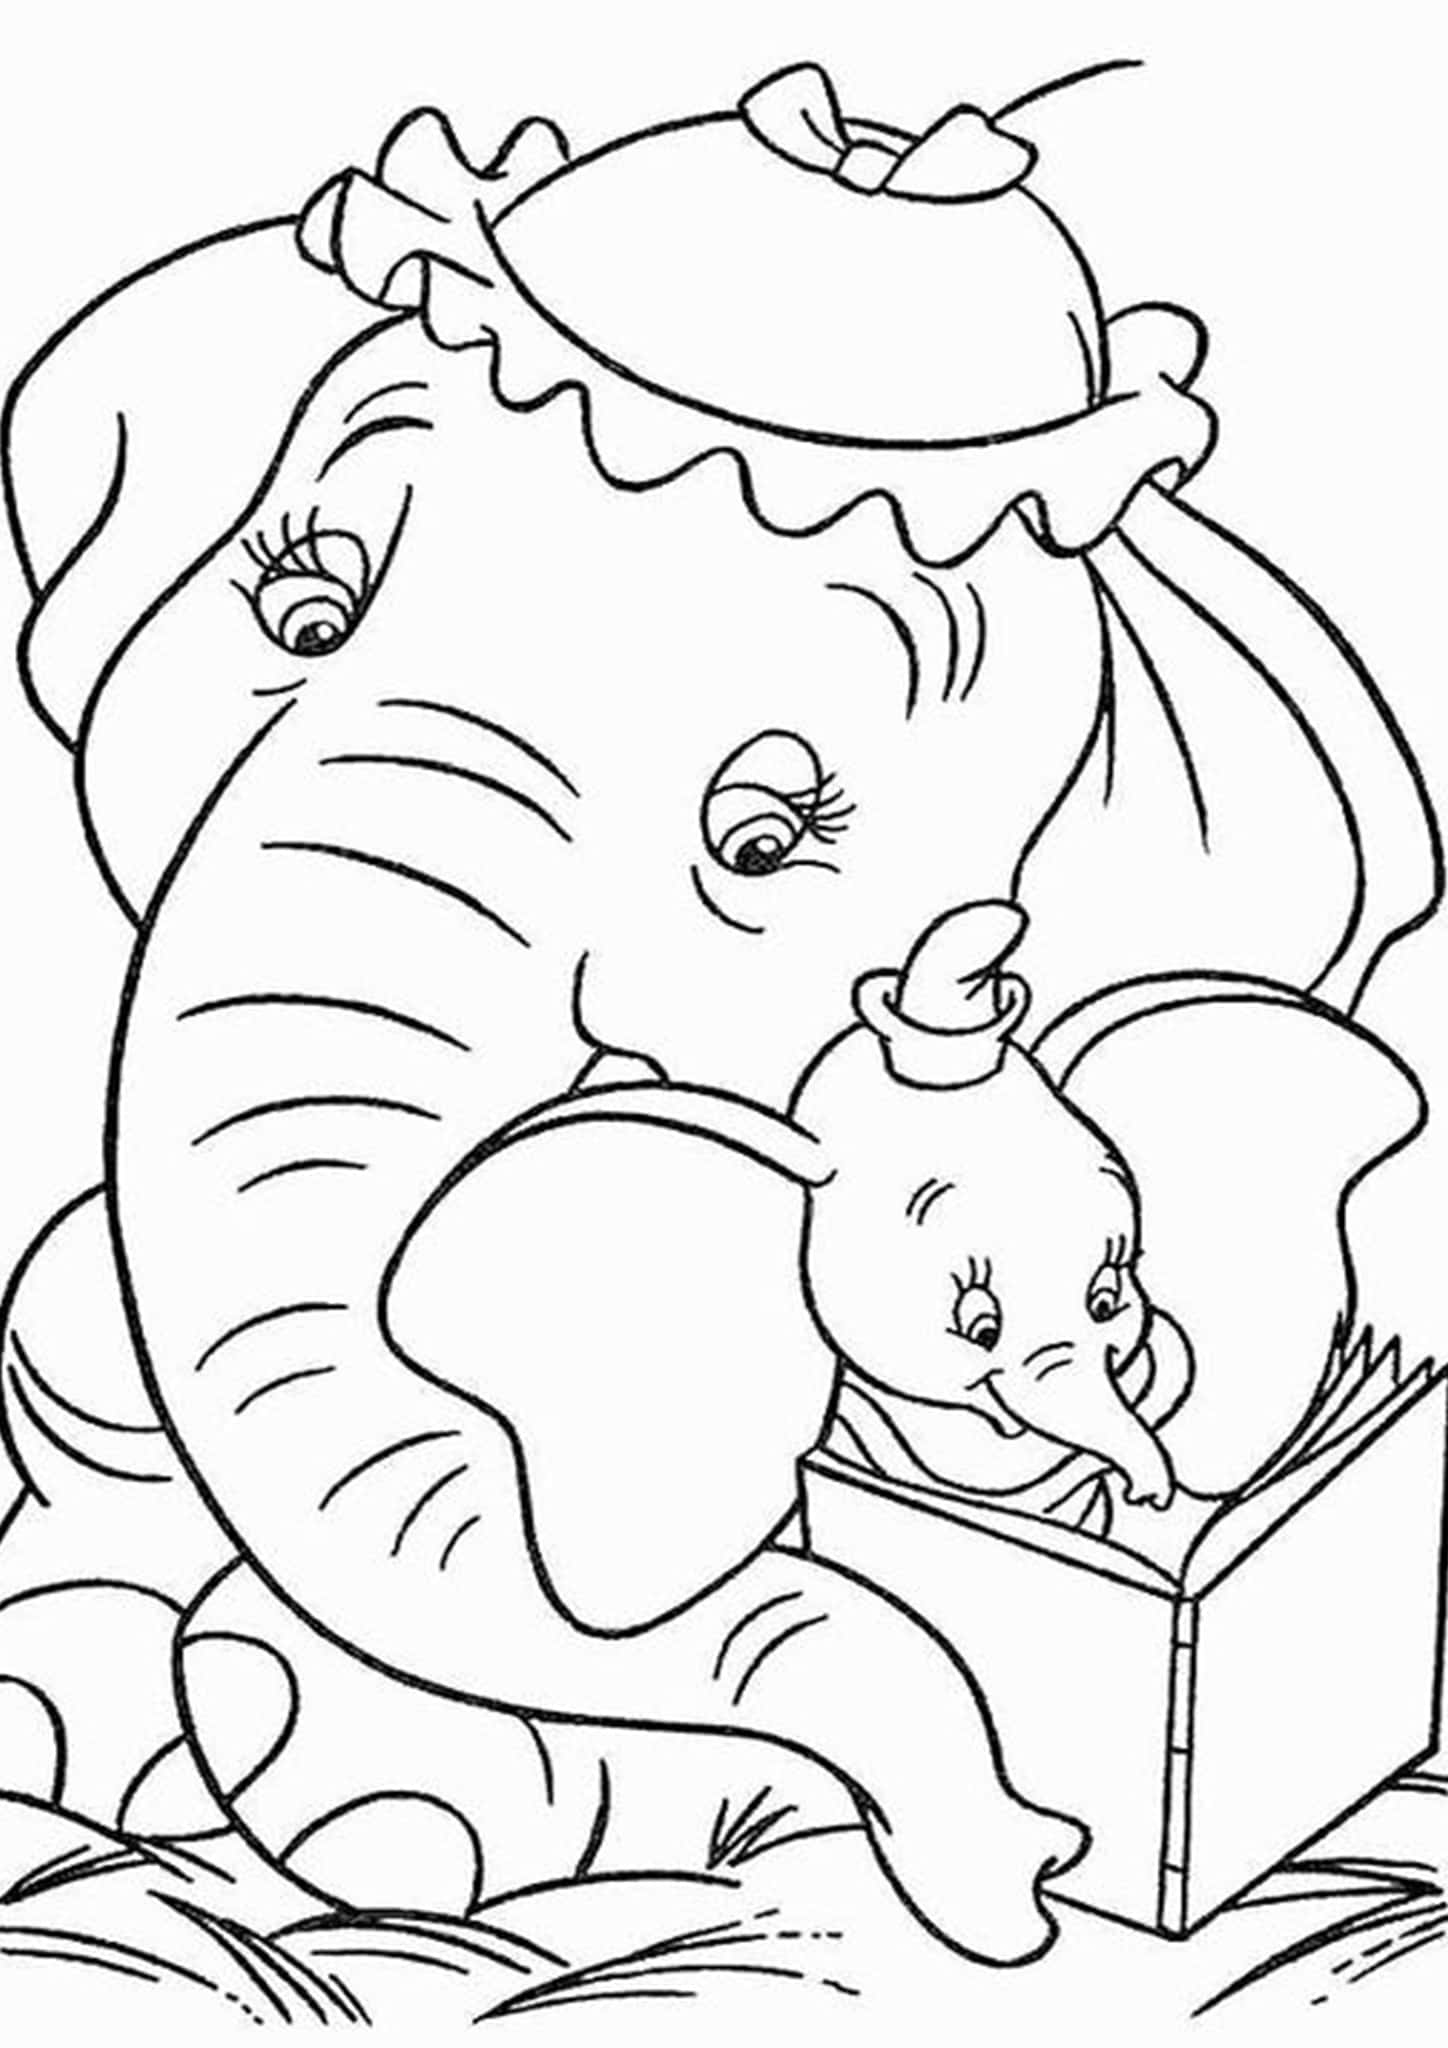 coloring book elephant images coloring pages elephant bestappsforkidscom book coloring elephant images